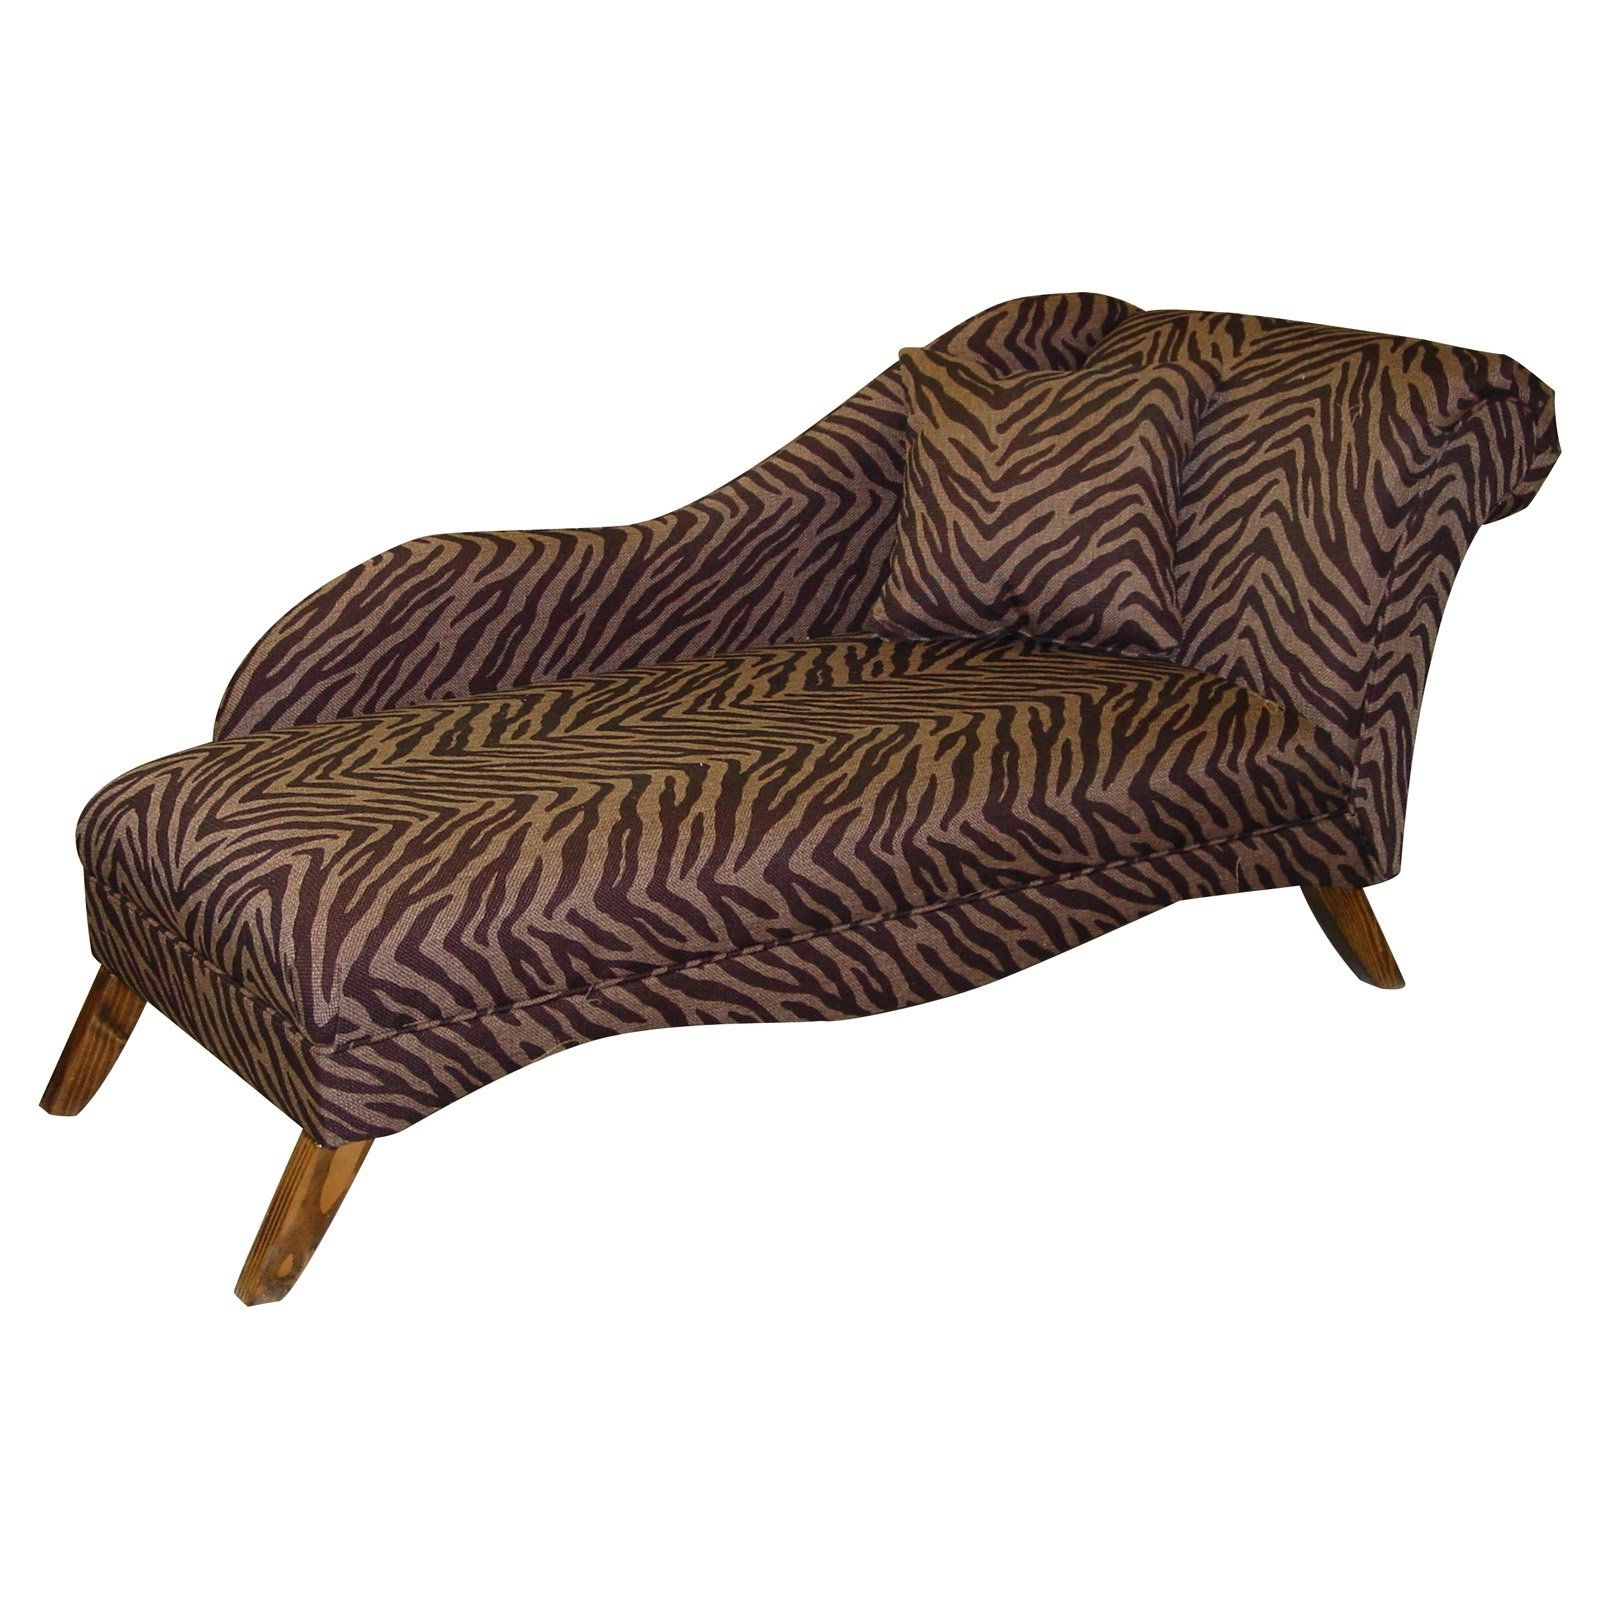 Leopard Print Chaise Lounges Inside Well Known Unbelievable Leopard Chaise Lounge With Image For Animal Print (View 3 of 15)